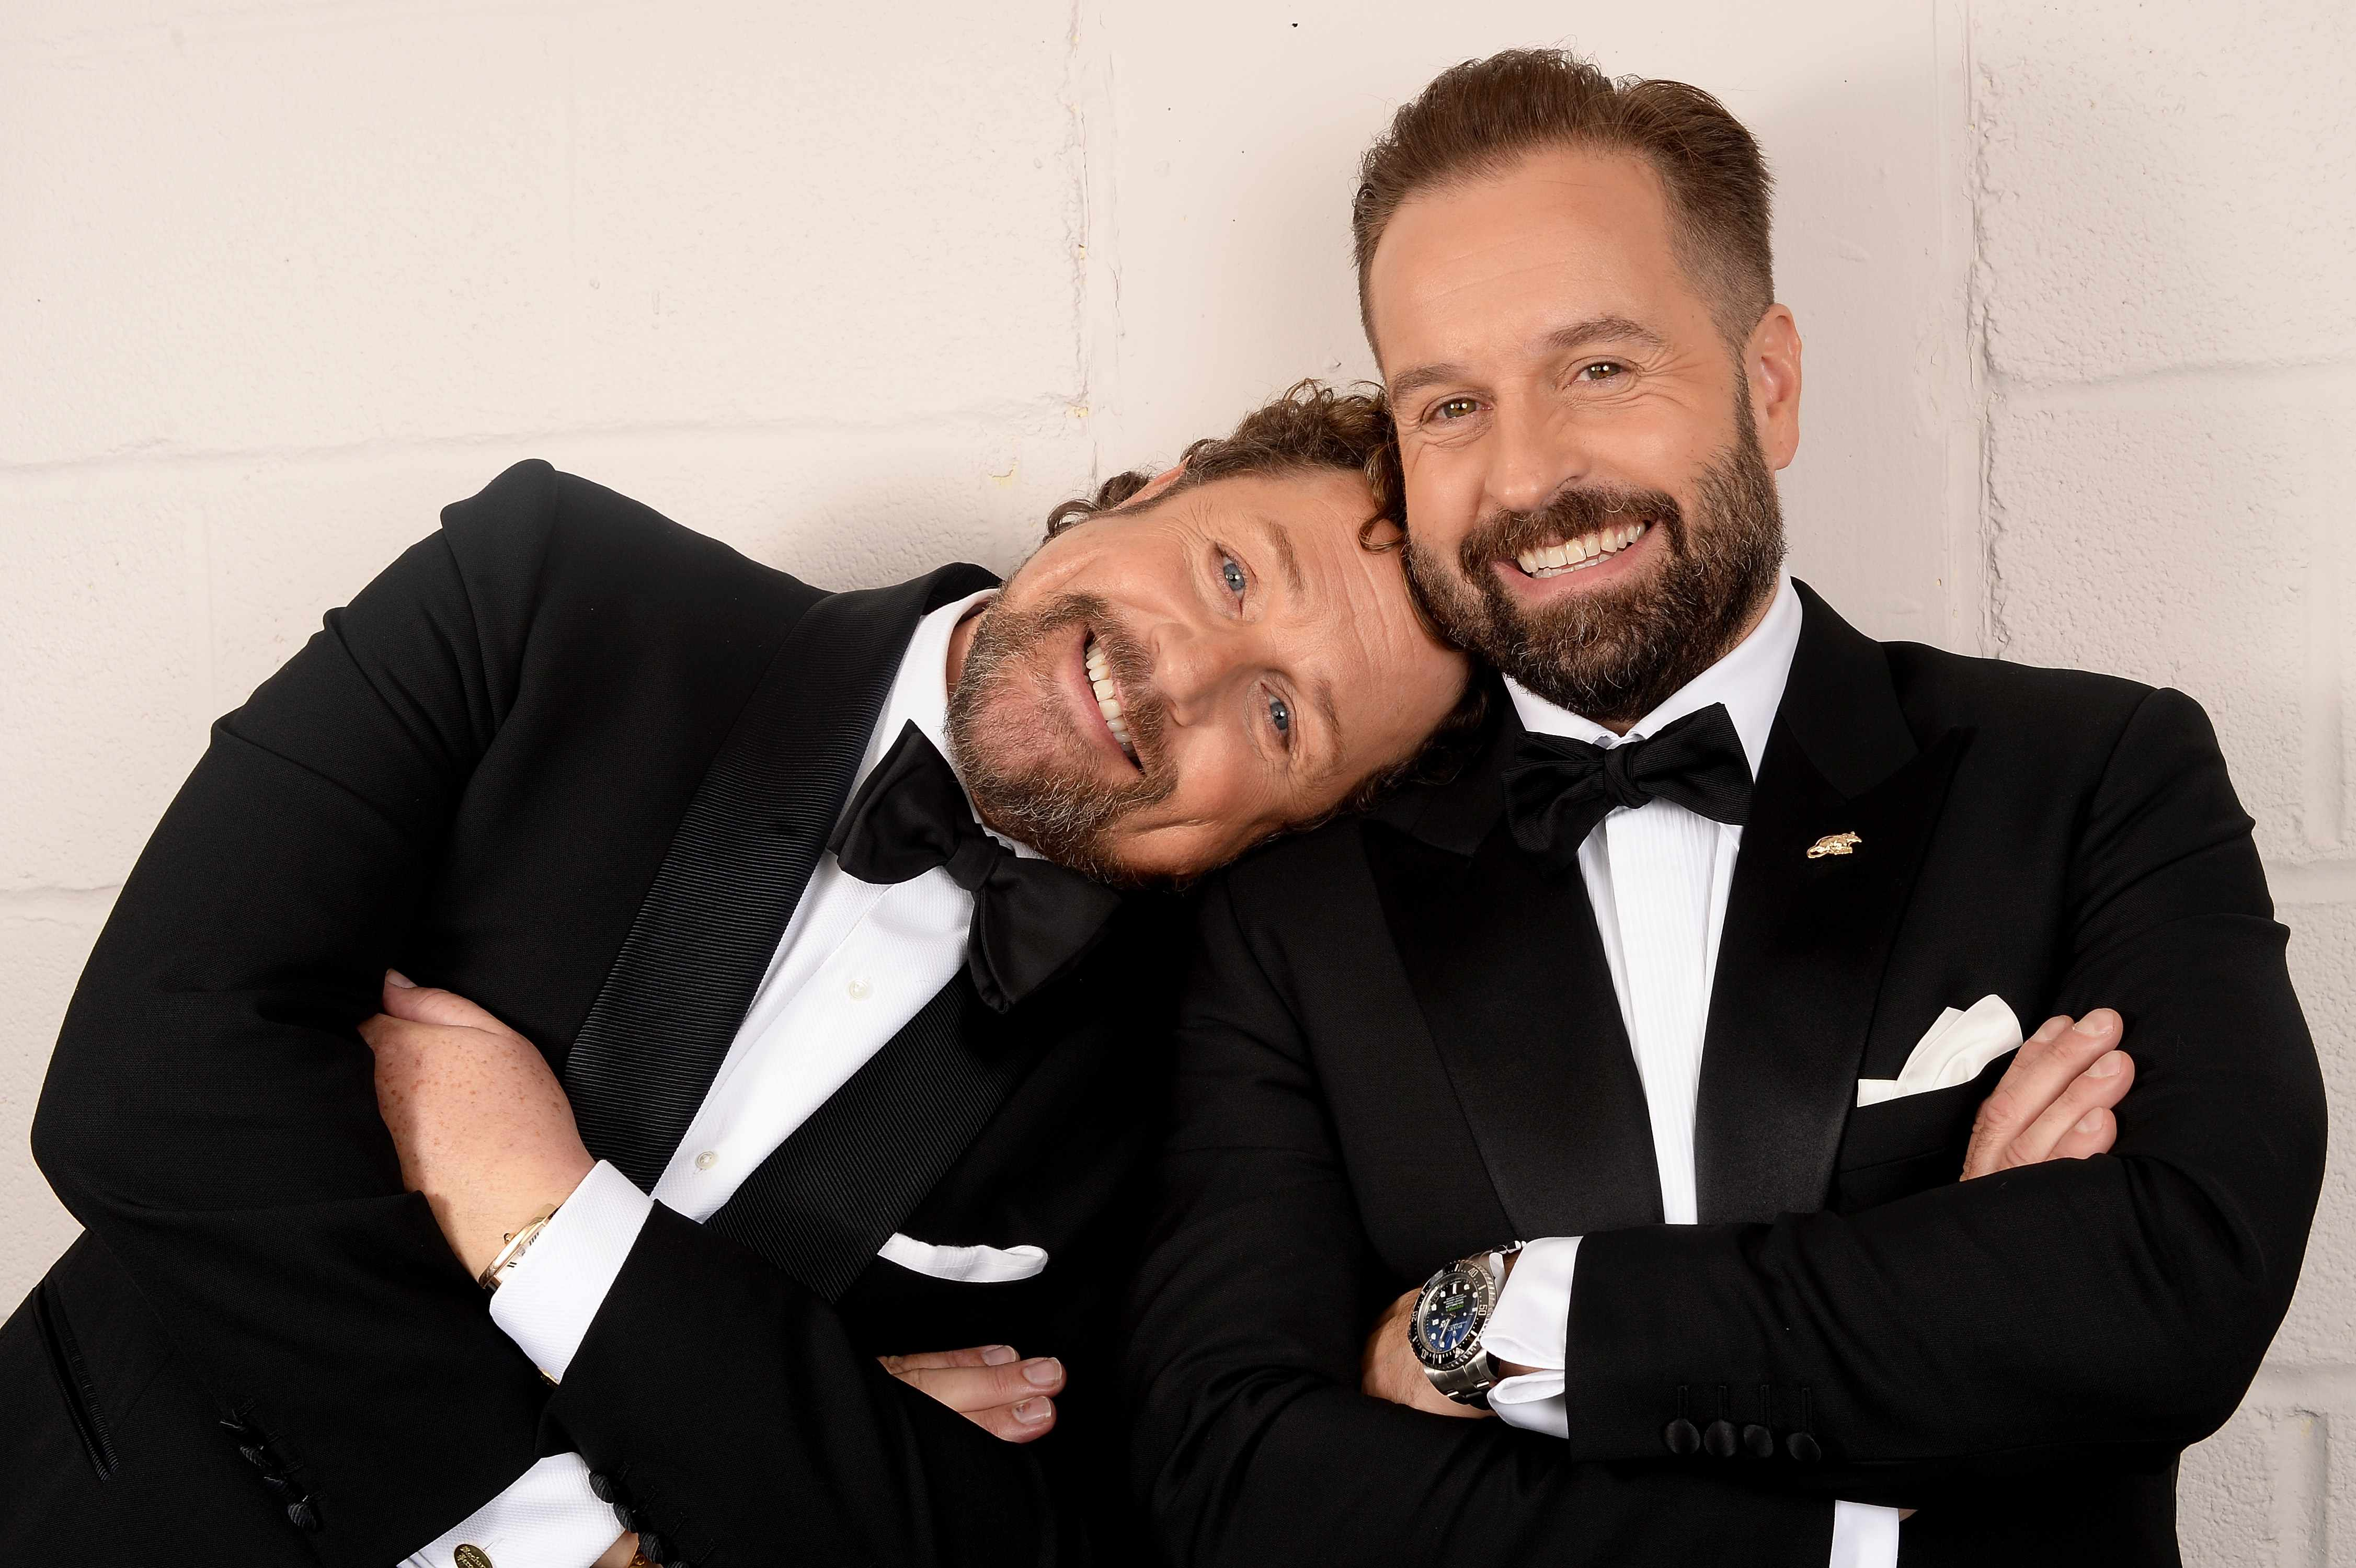 LONDON, ENGLAND - JUNE 13:  Michael Ball (L) and Alfie Boe pose backstage during the Classic BRIT Awards rehearsals at Royal Albert Hall on June 13, 2018 in London, England.  (Photo by Dave J Hogan/Dave J Hogan/Getty Images)